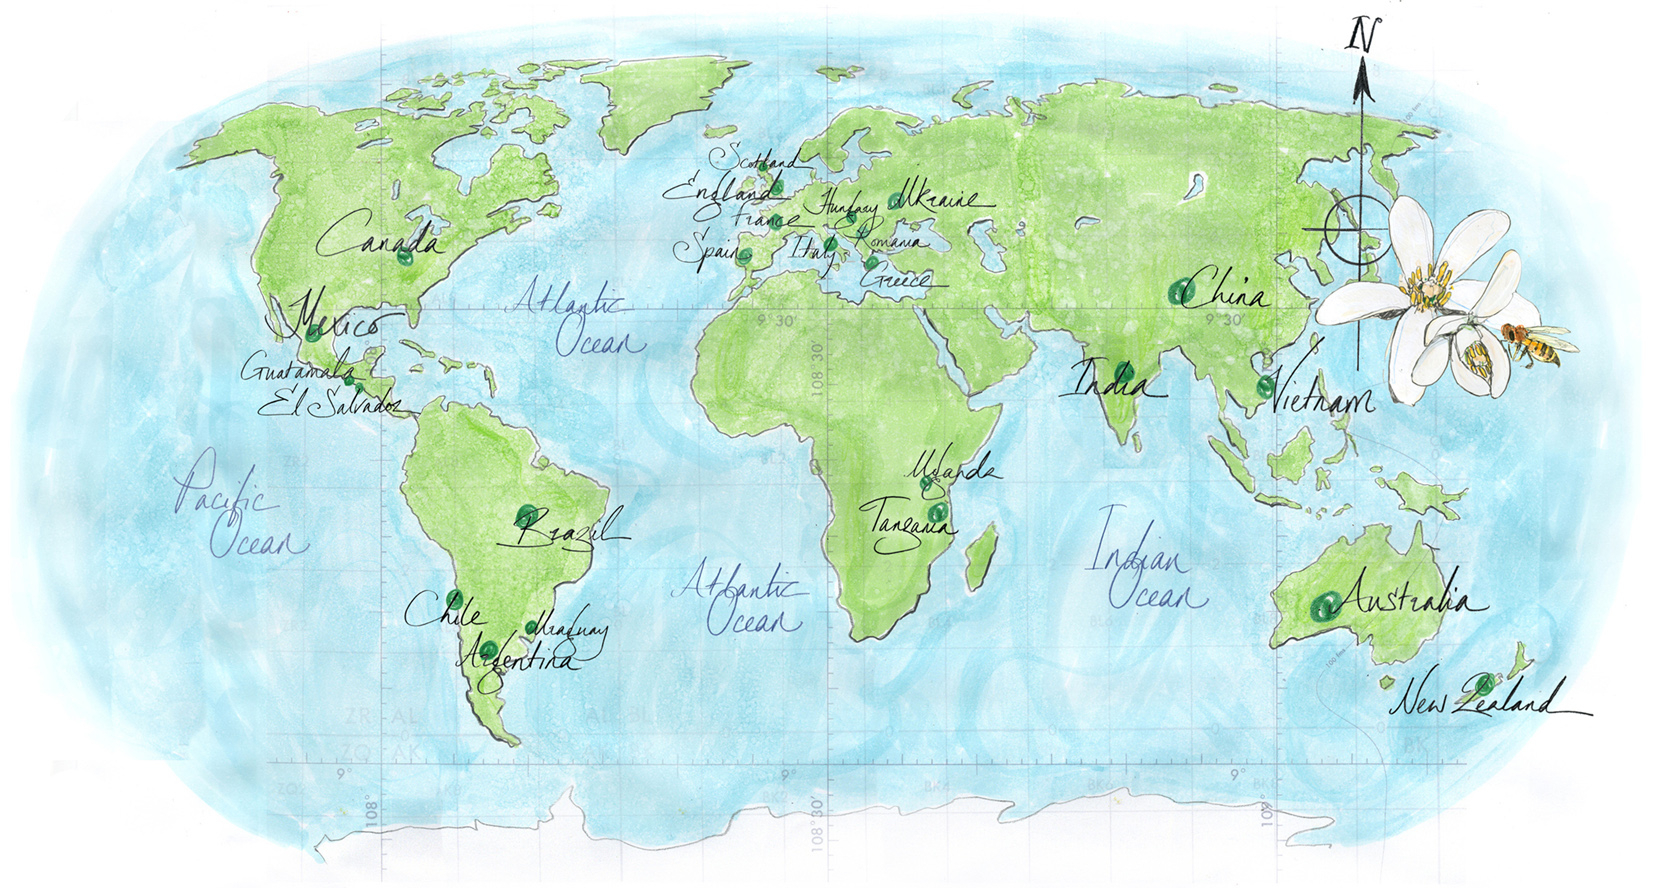 World Map Rowse Honey / The Branding Company